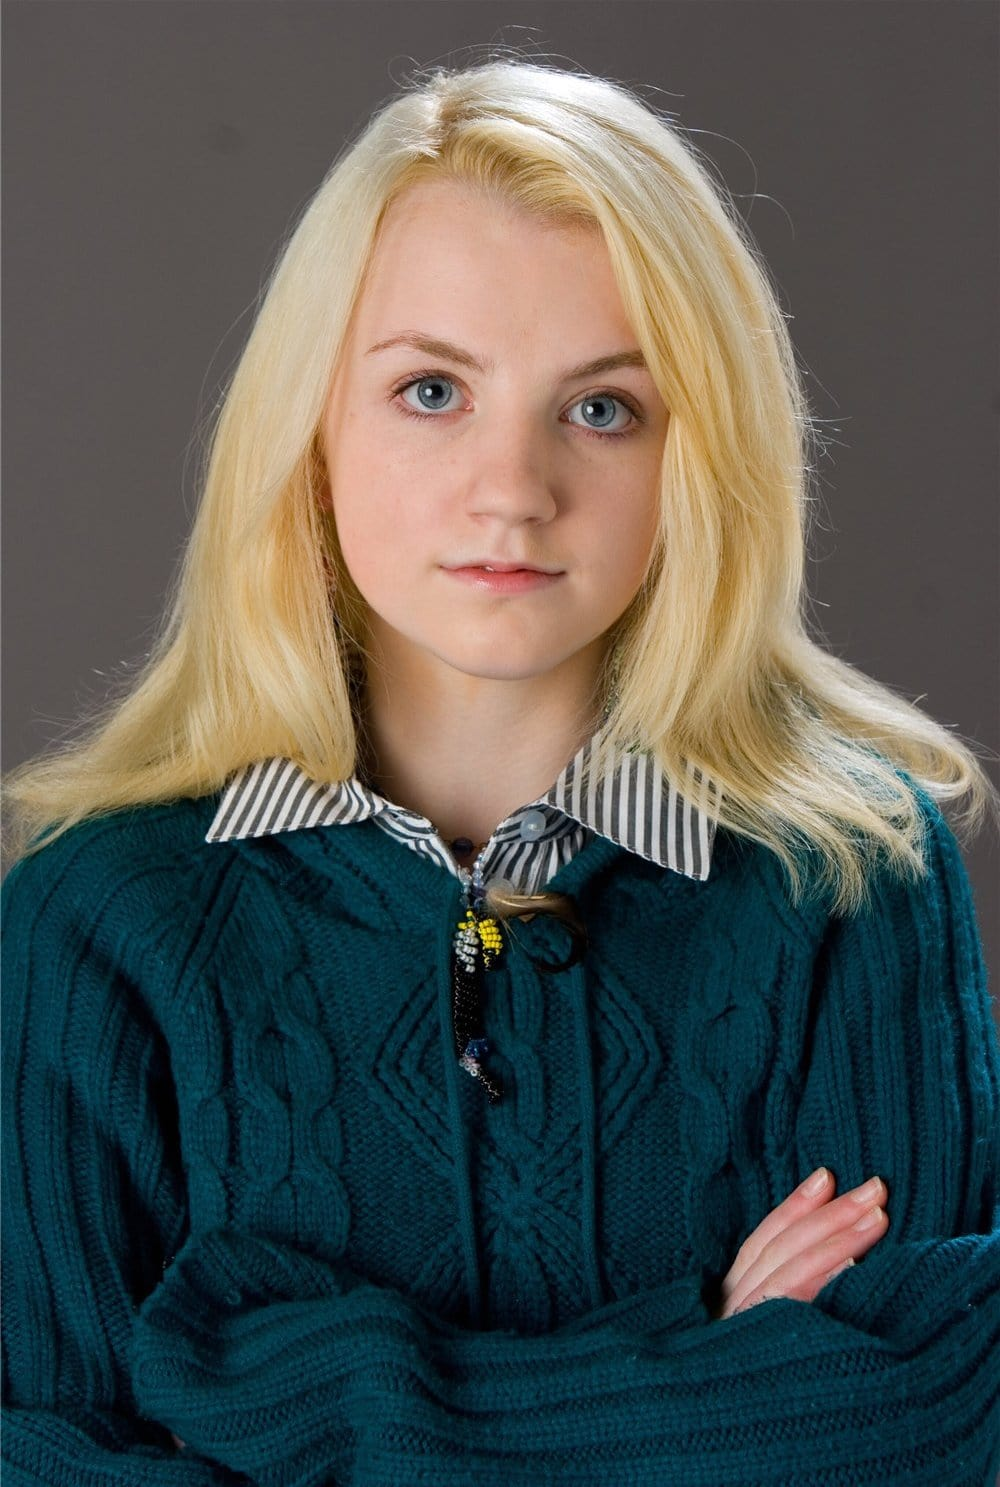 Boobs Young Evanna Lynch naked photo 2017